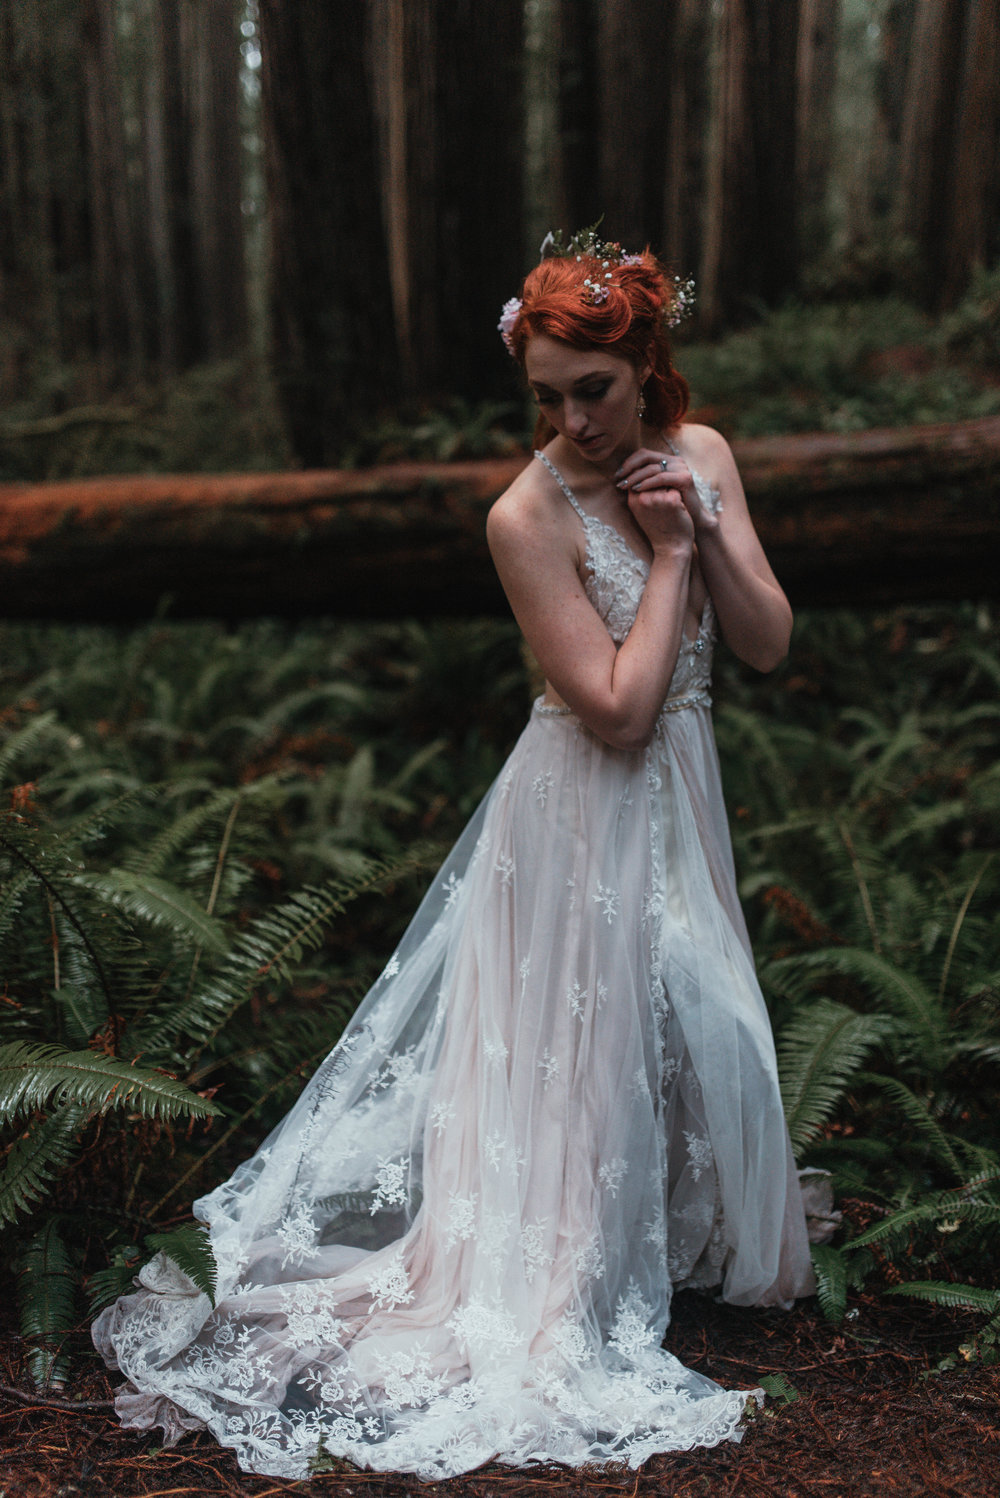 Intimiate Redwoods Elopement , Elopement Inspiration, Jessica Heron Images, Northern California Elopement, Oregon Elopement, Oregon Wedding, Elopement Ideas, diy dress